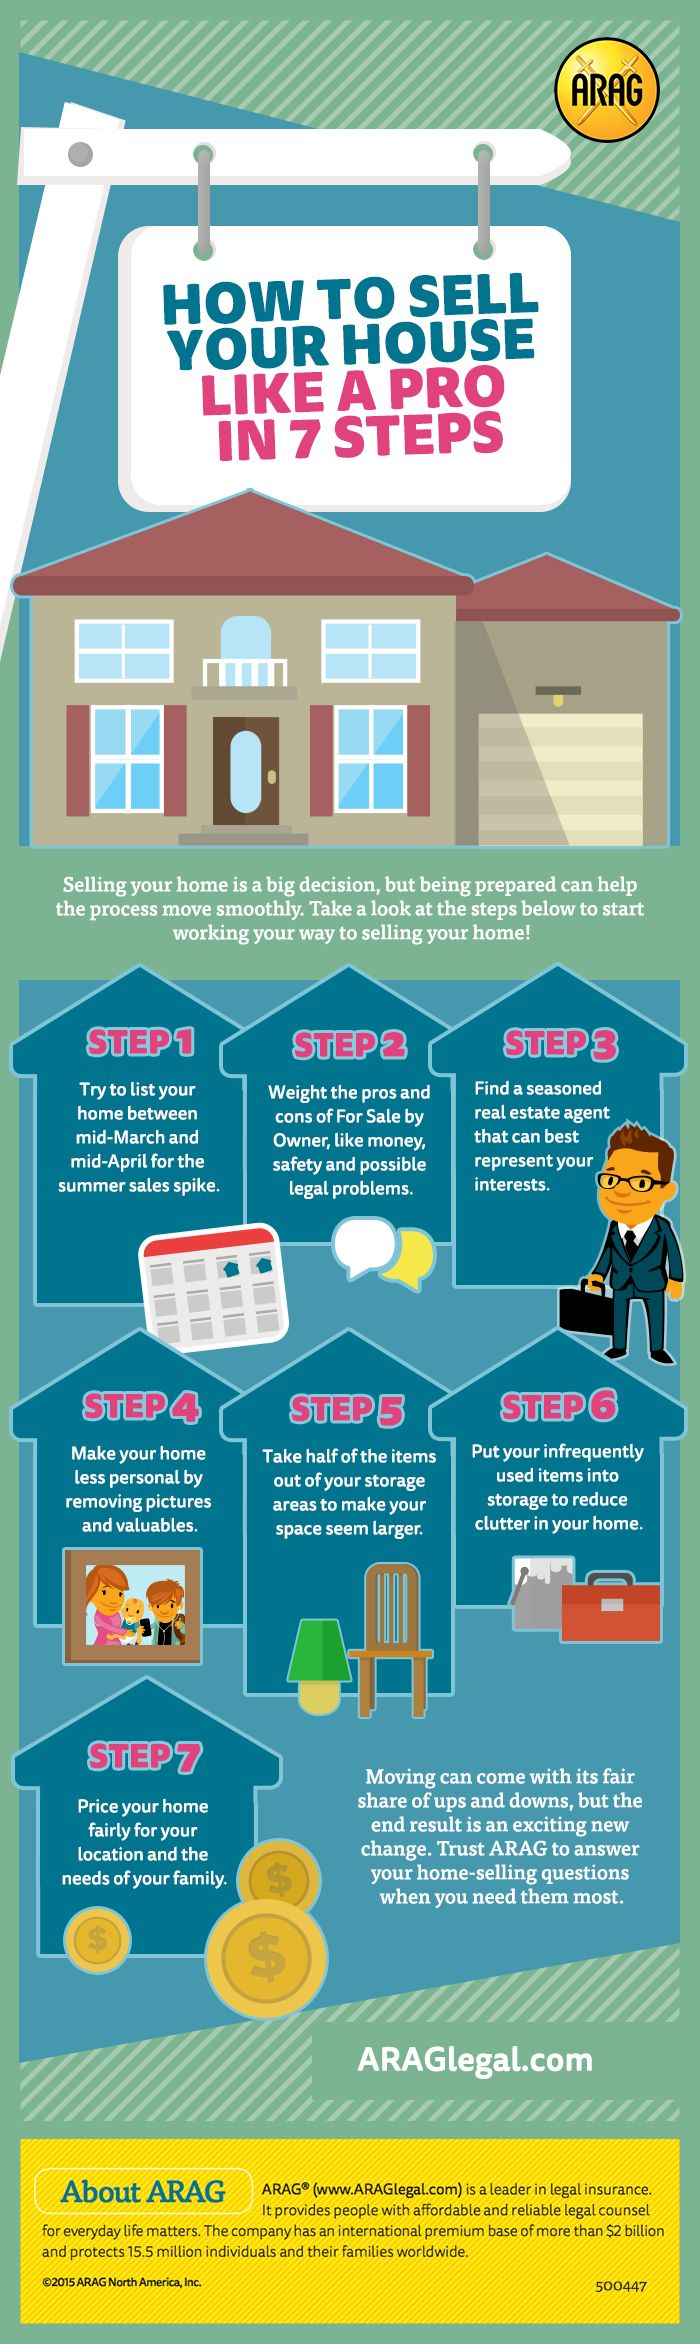 7 Steps to Selling Your House advise